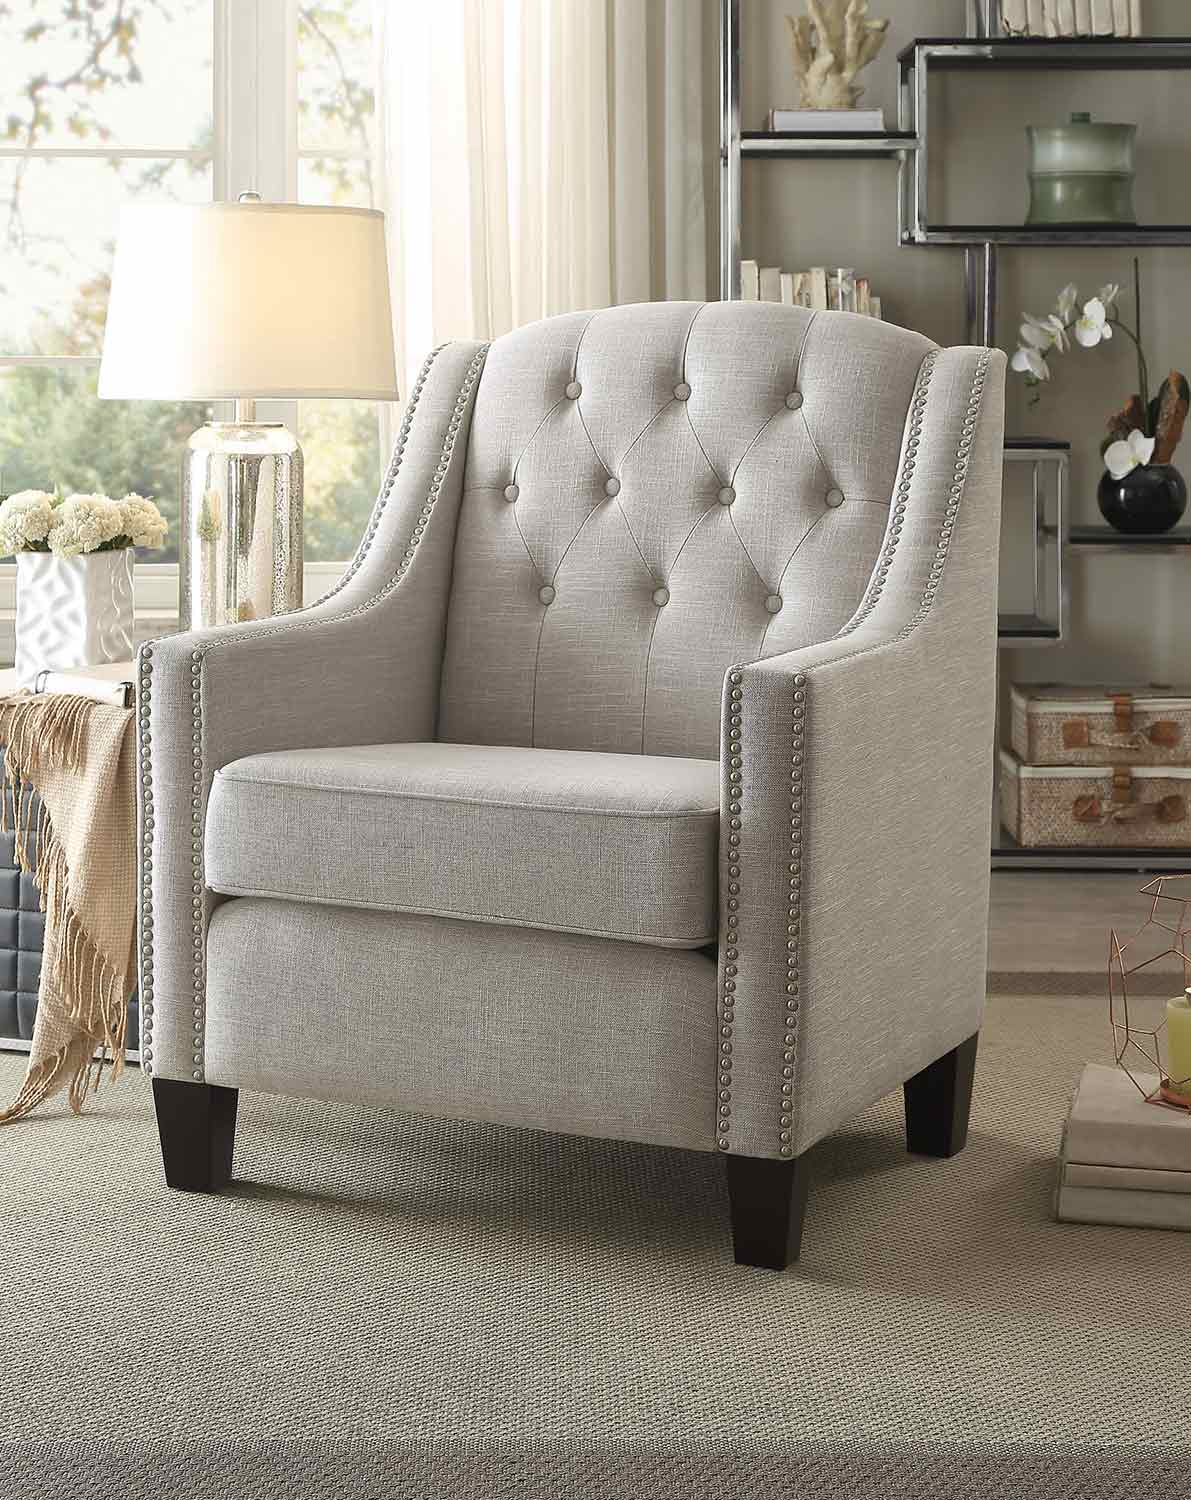 Homelegance Harmony Accent Chair - Neutral Beige